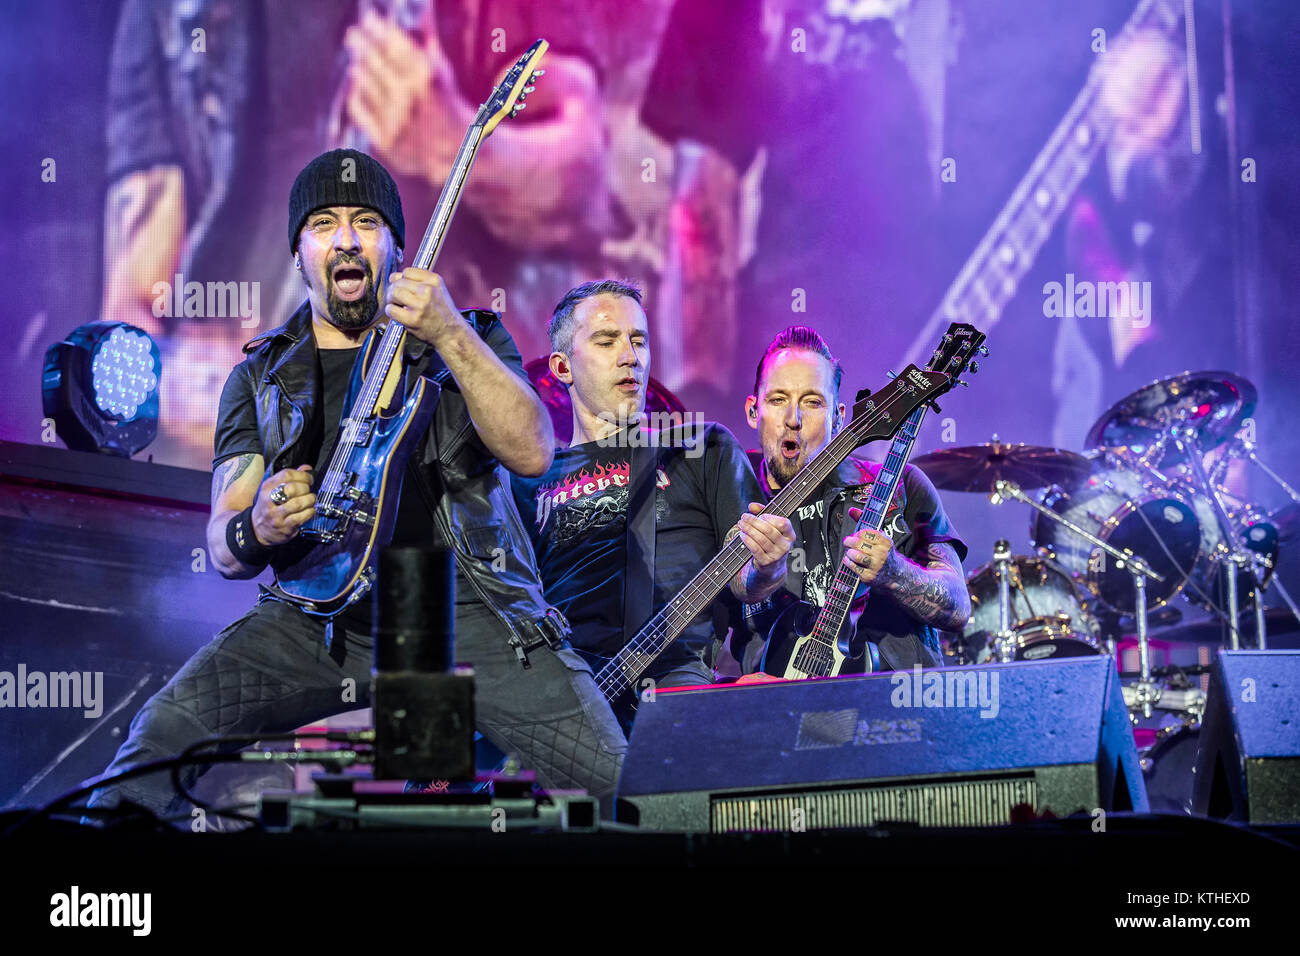 The Danish hard rock band Volbeat performs a live concert at